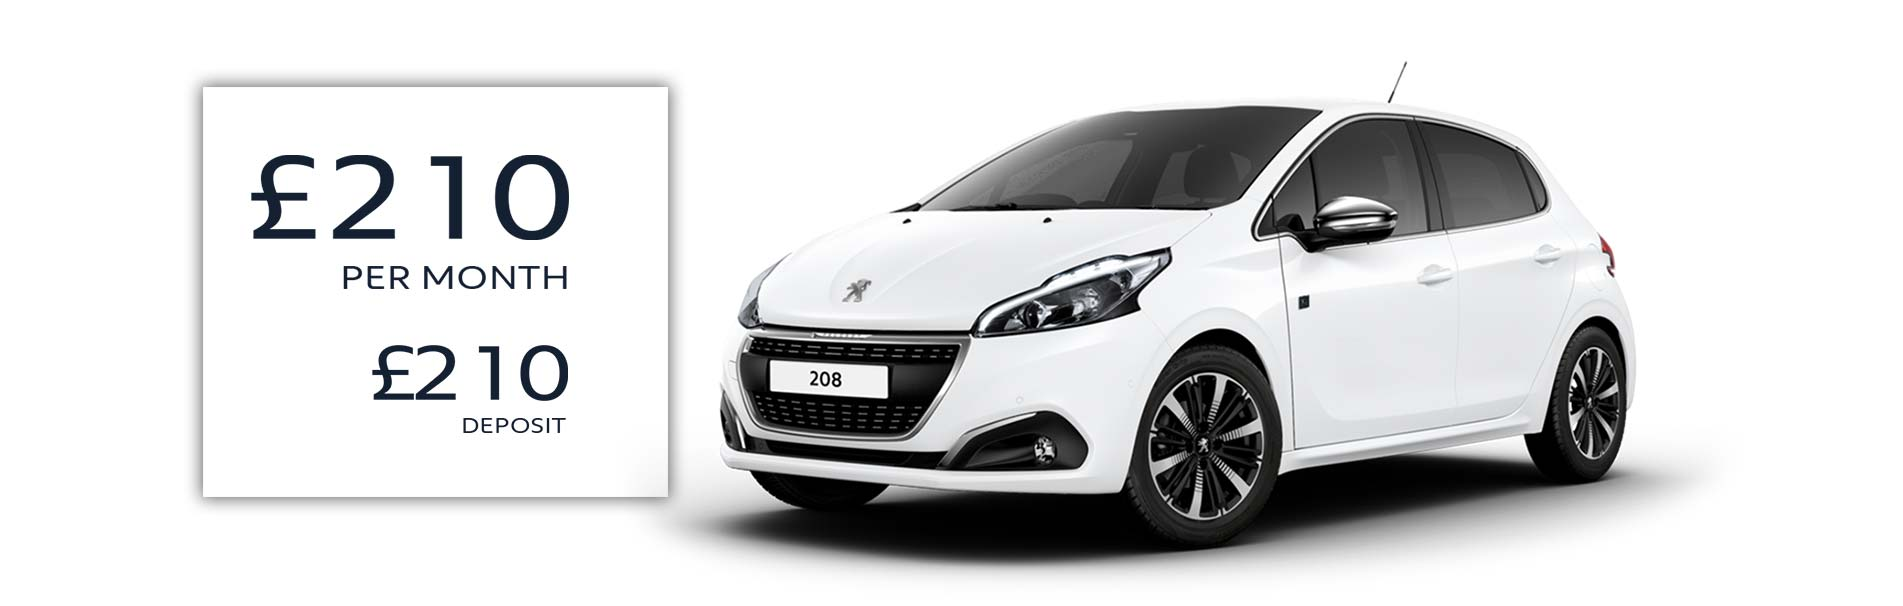 new-peugeot-208-tech-edition-march-specials-sli